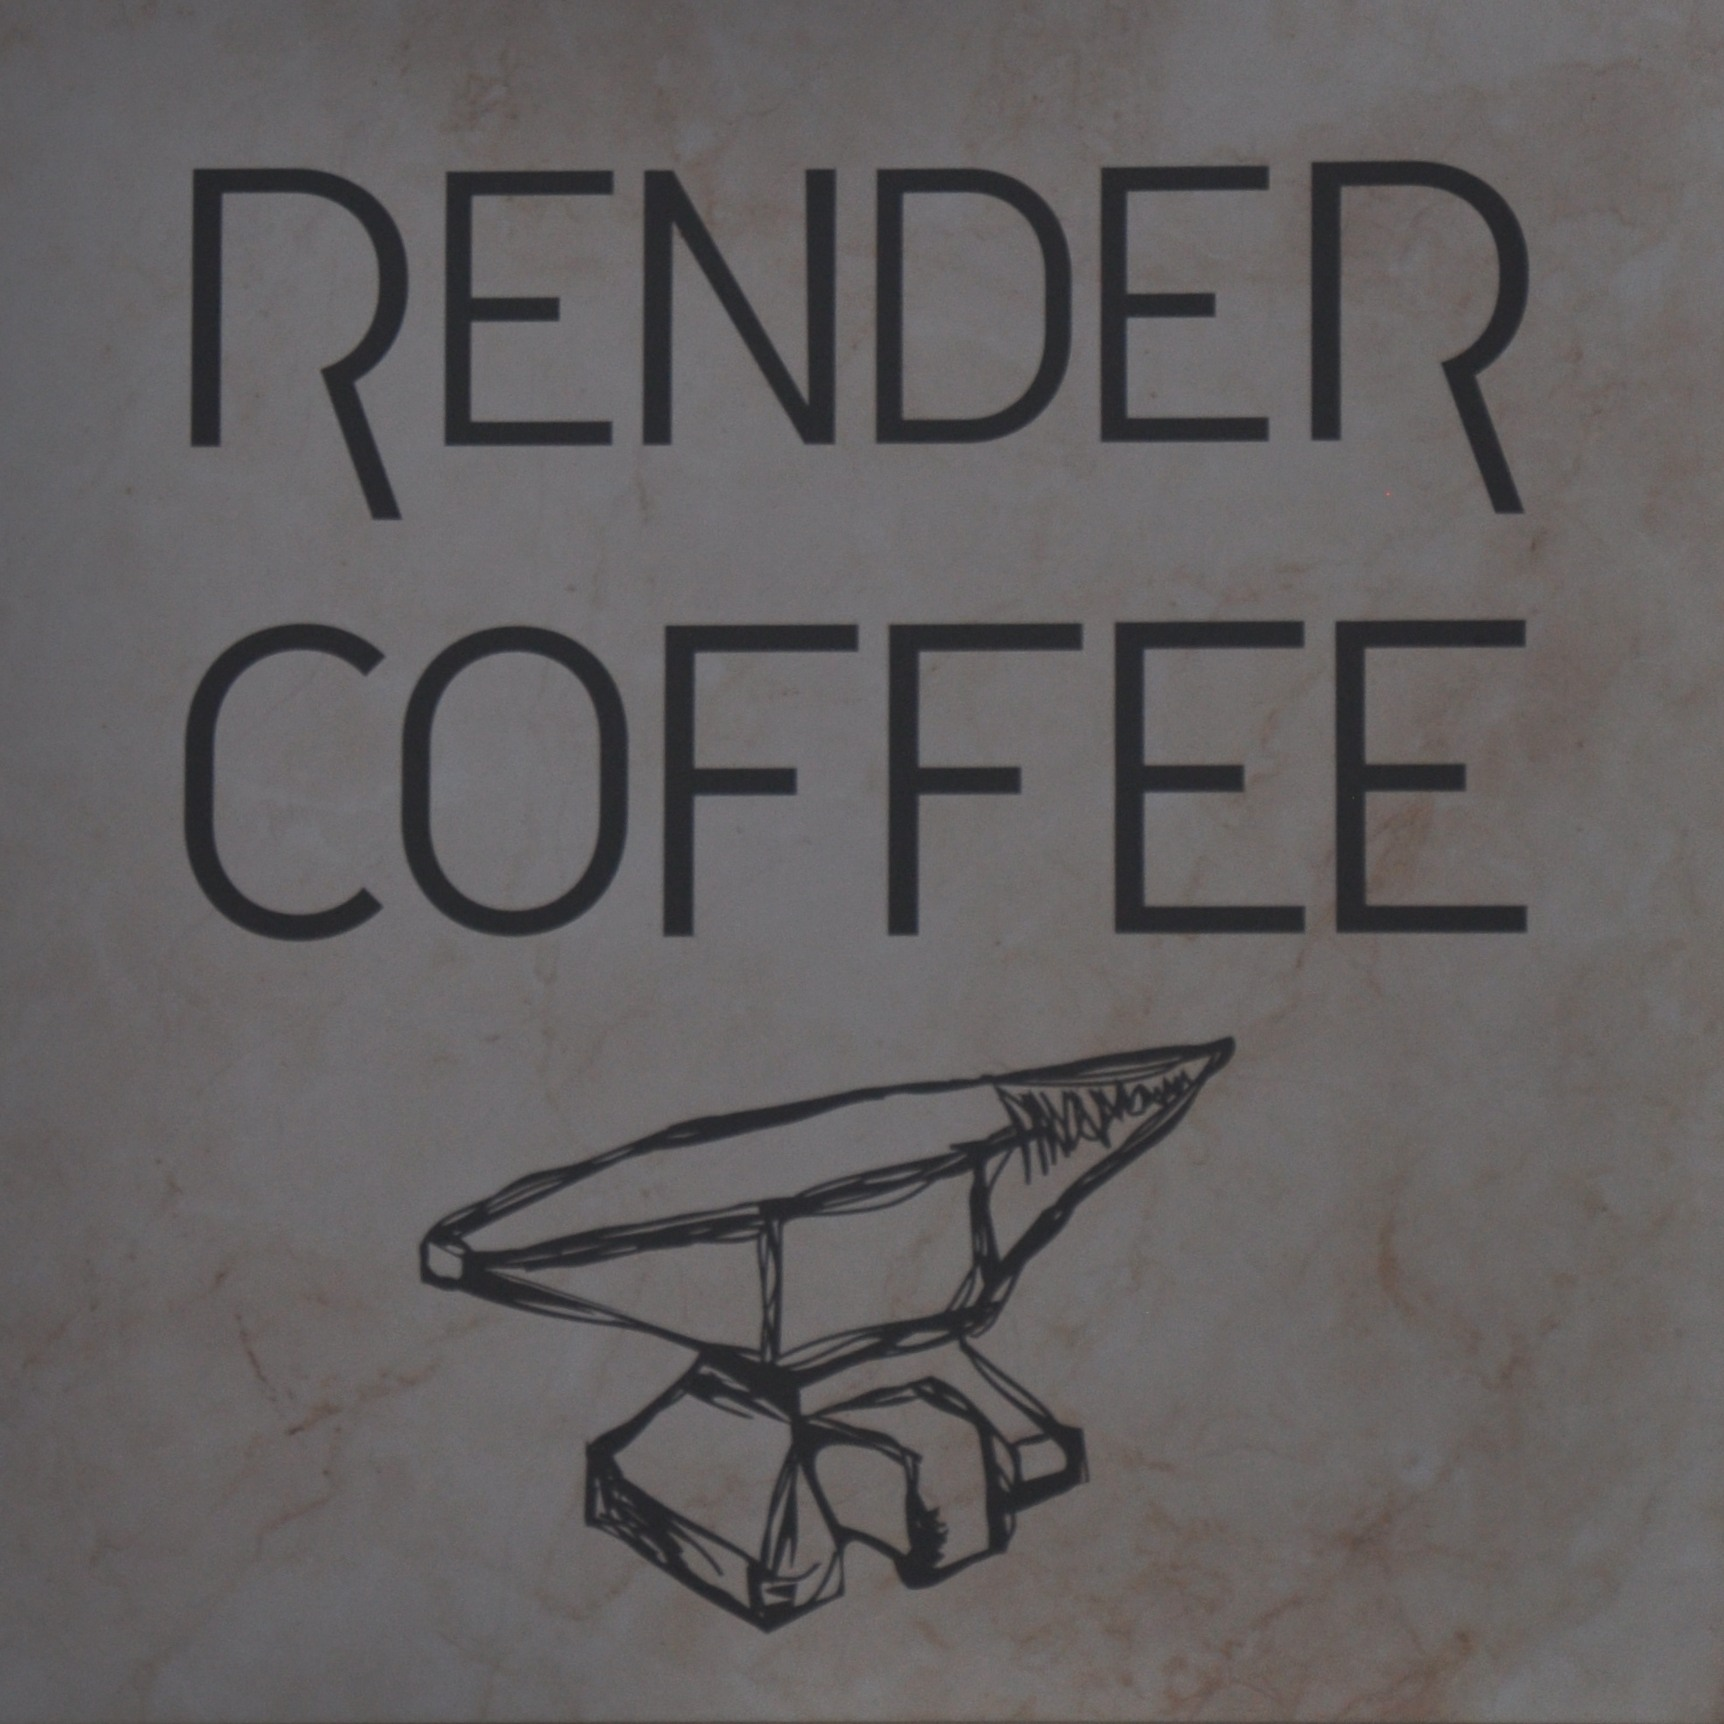 The Render Coffee logo, from the sign outside. The words RENDER COFFEE above a line-drawing of an anvil.